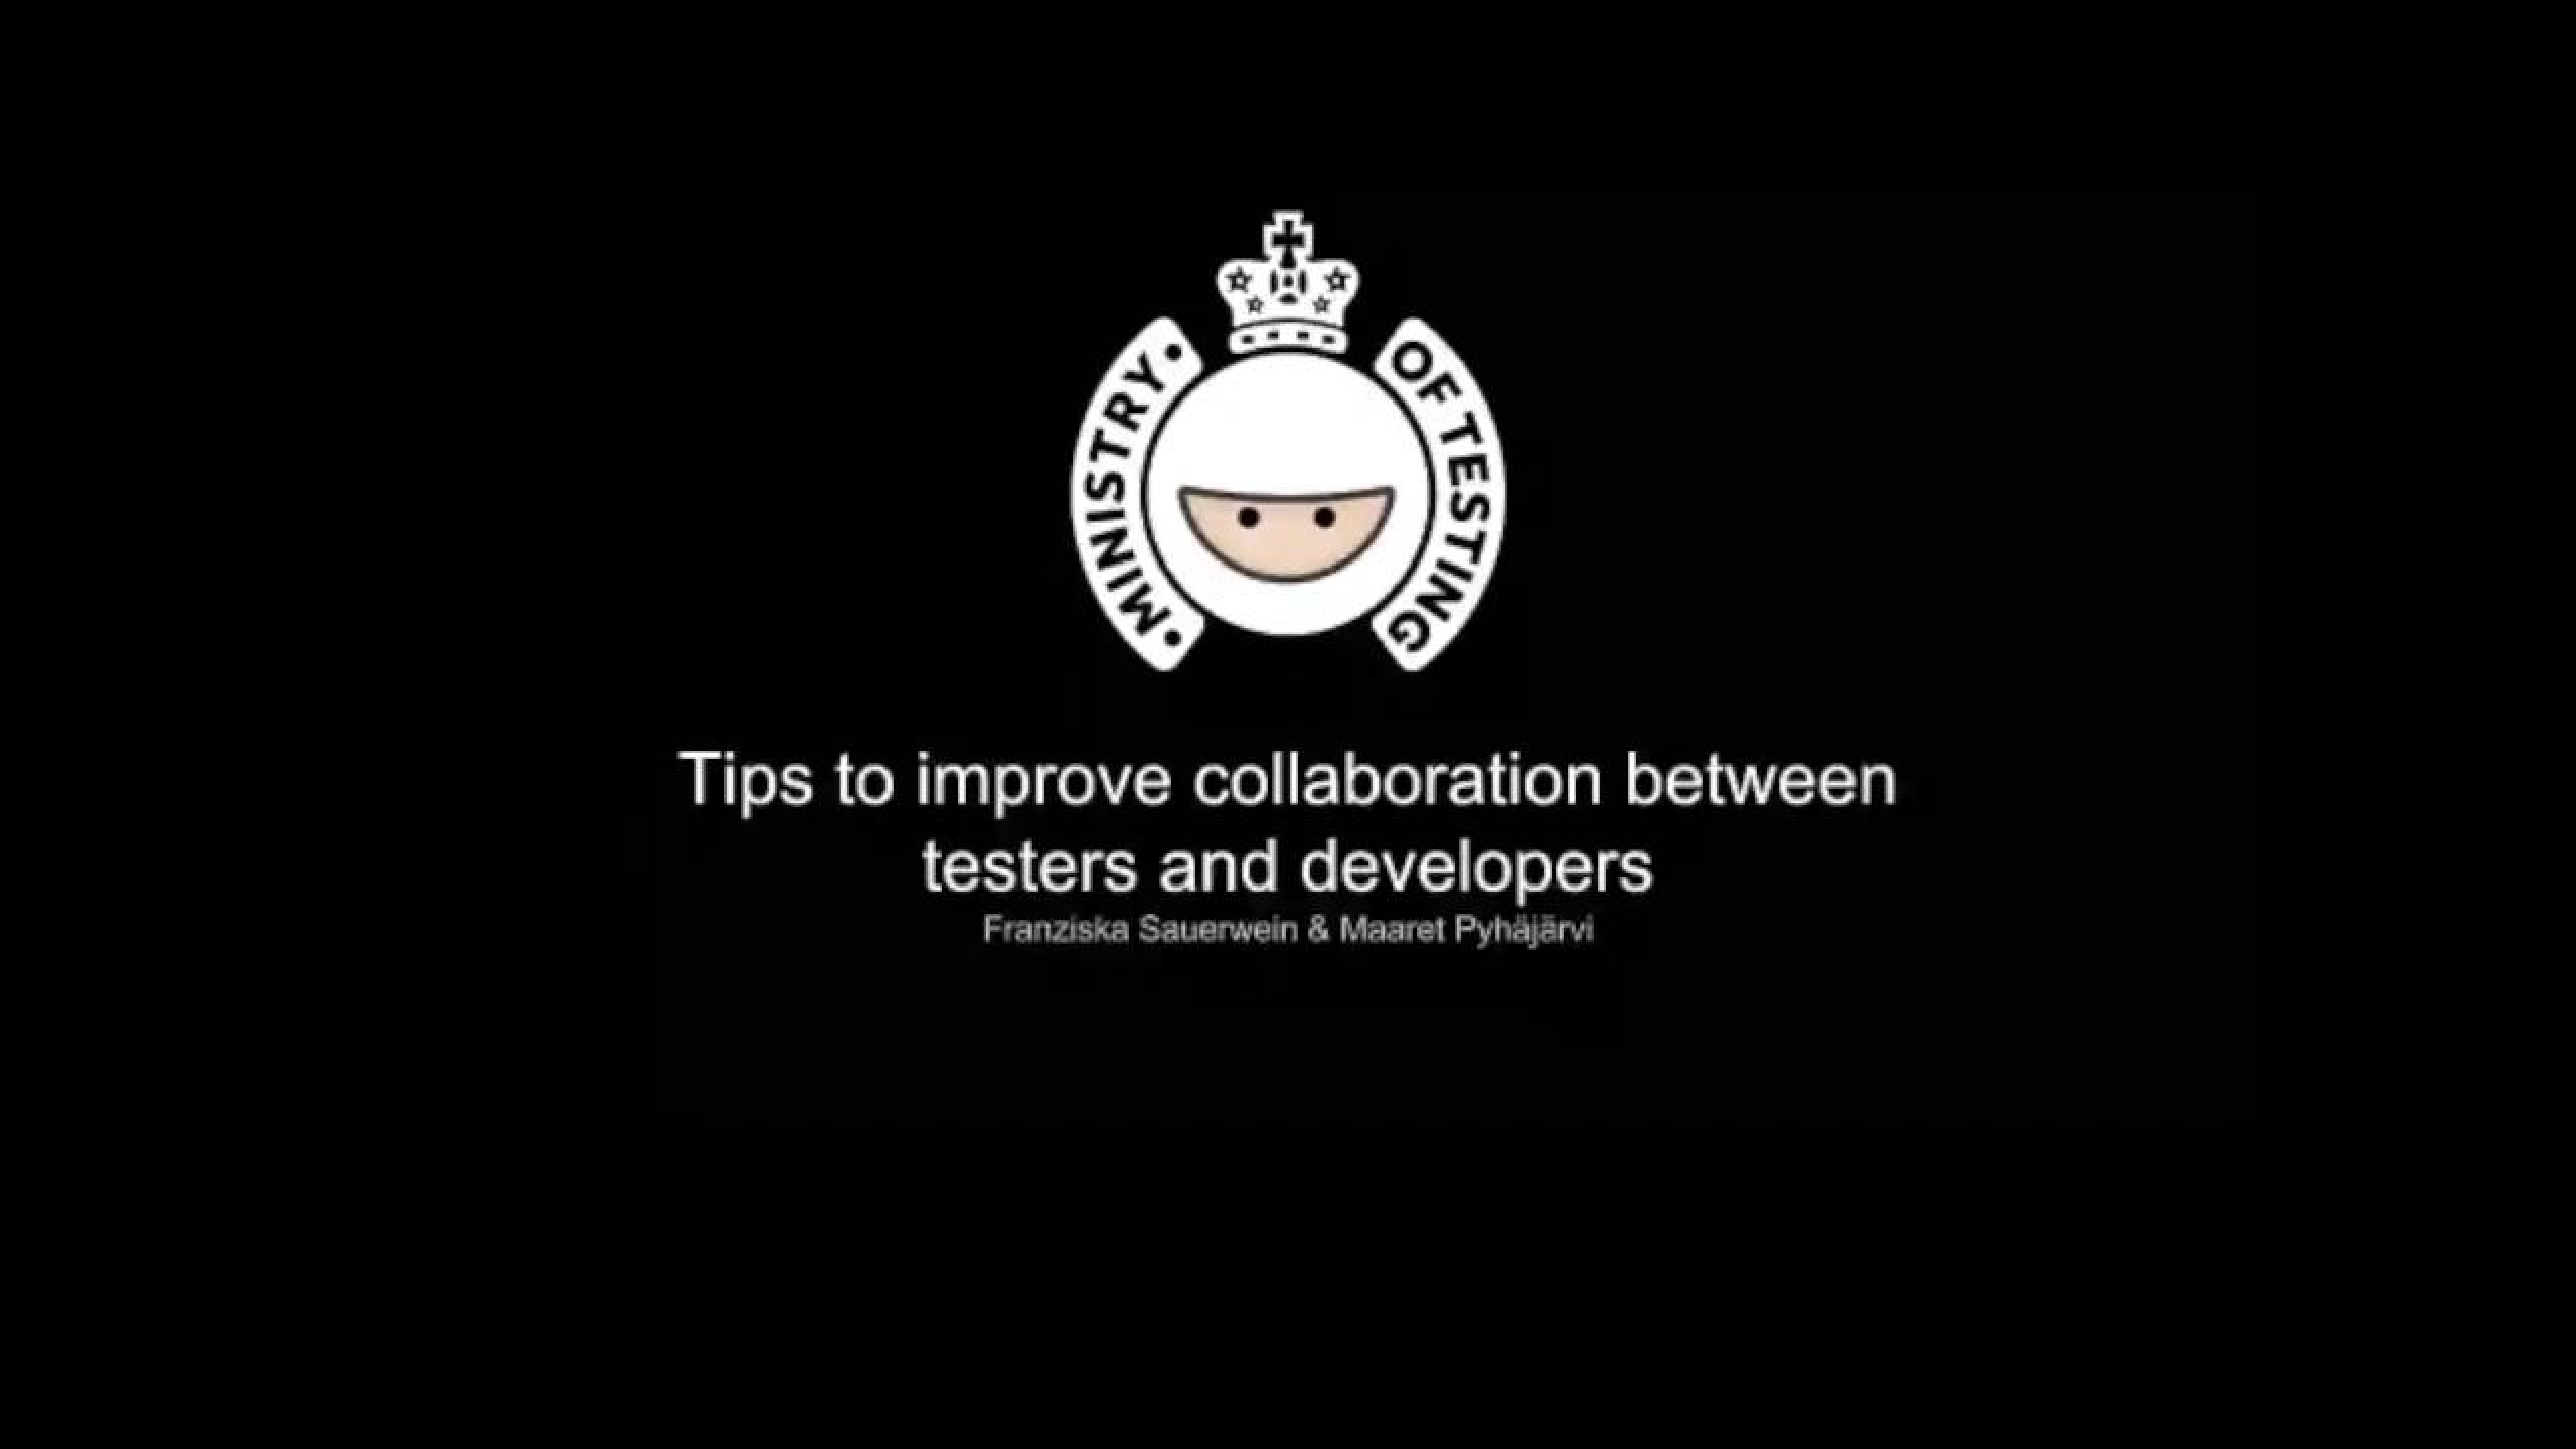 Tips to Improve Collaboration Between Testers and Developers with Franziska Sauerwein & Maaret Pyhäjärvi